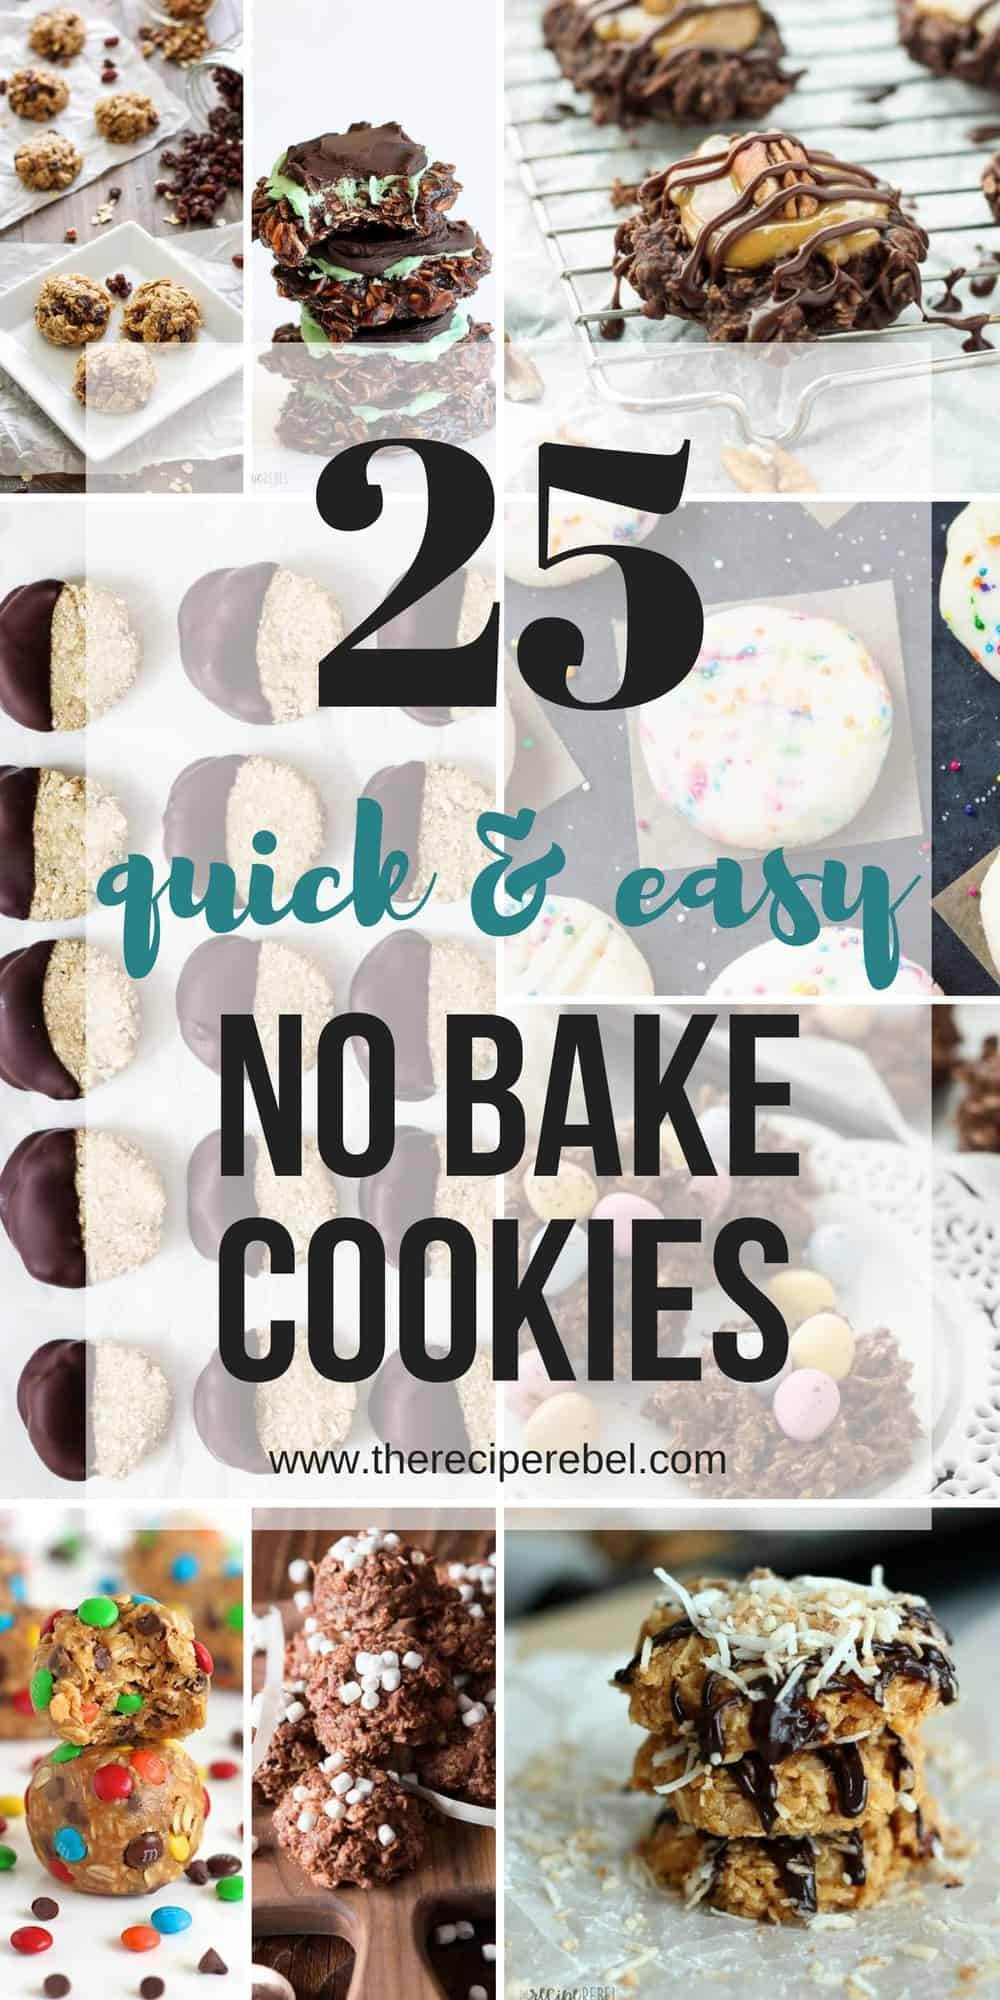 no bake cookie recipes collage with multiple images and text